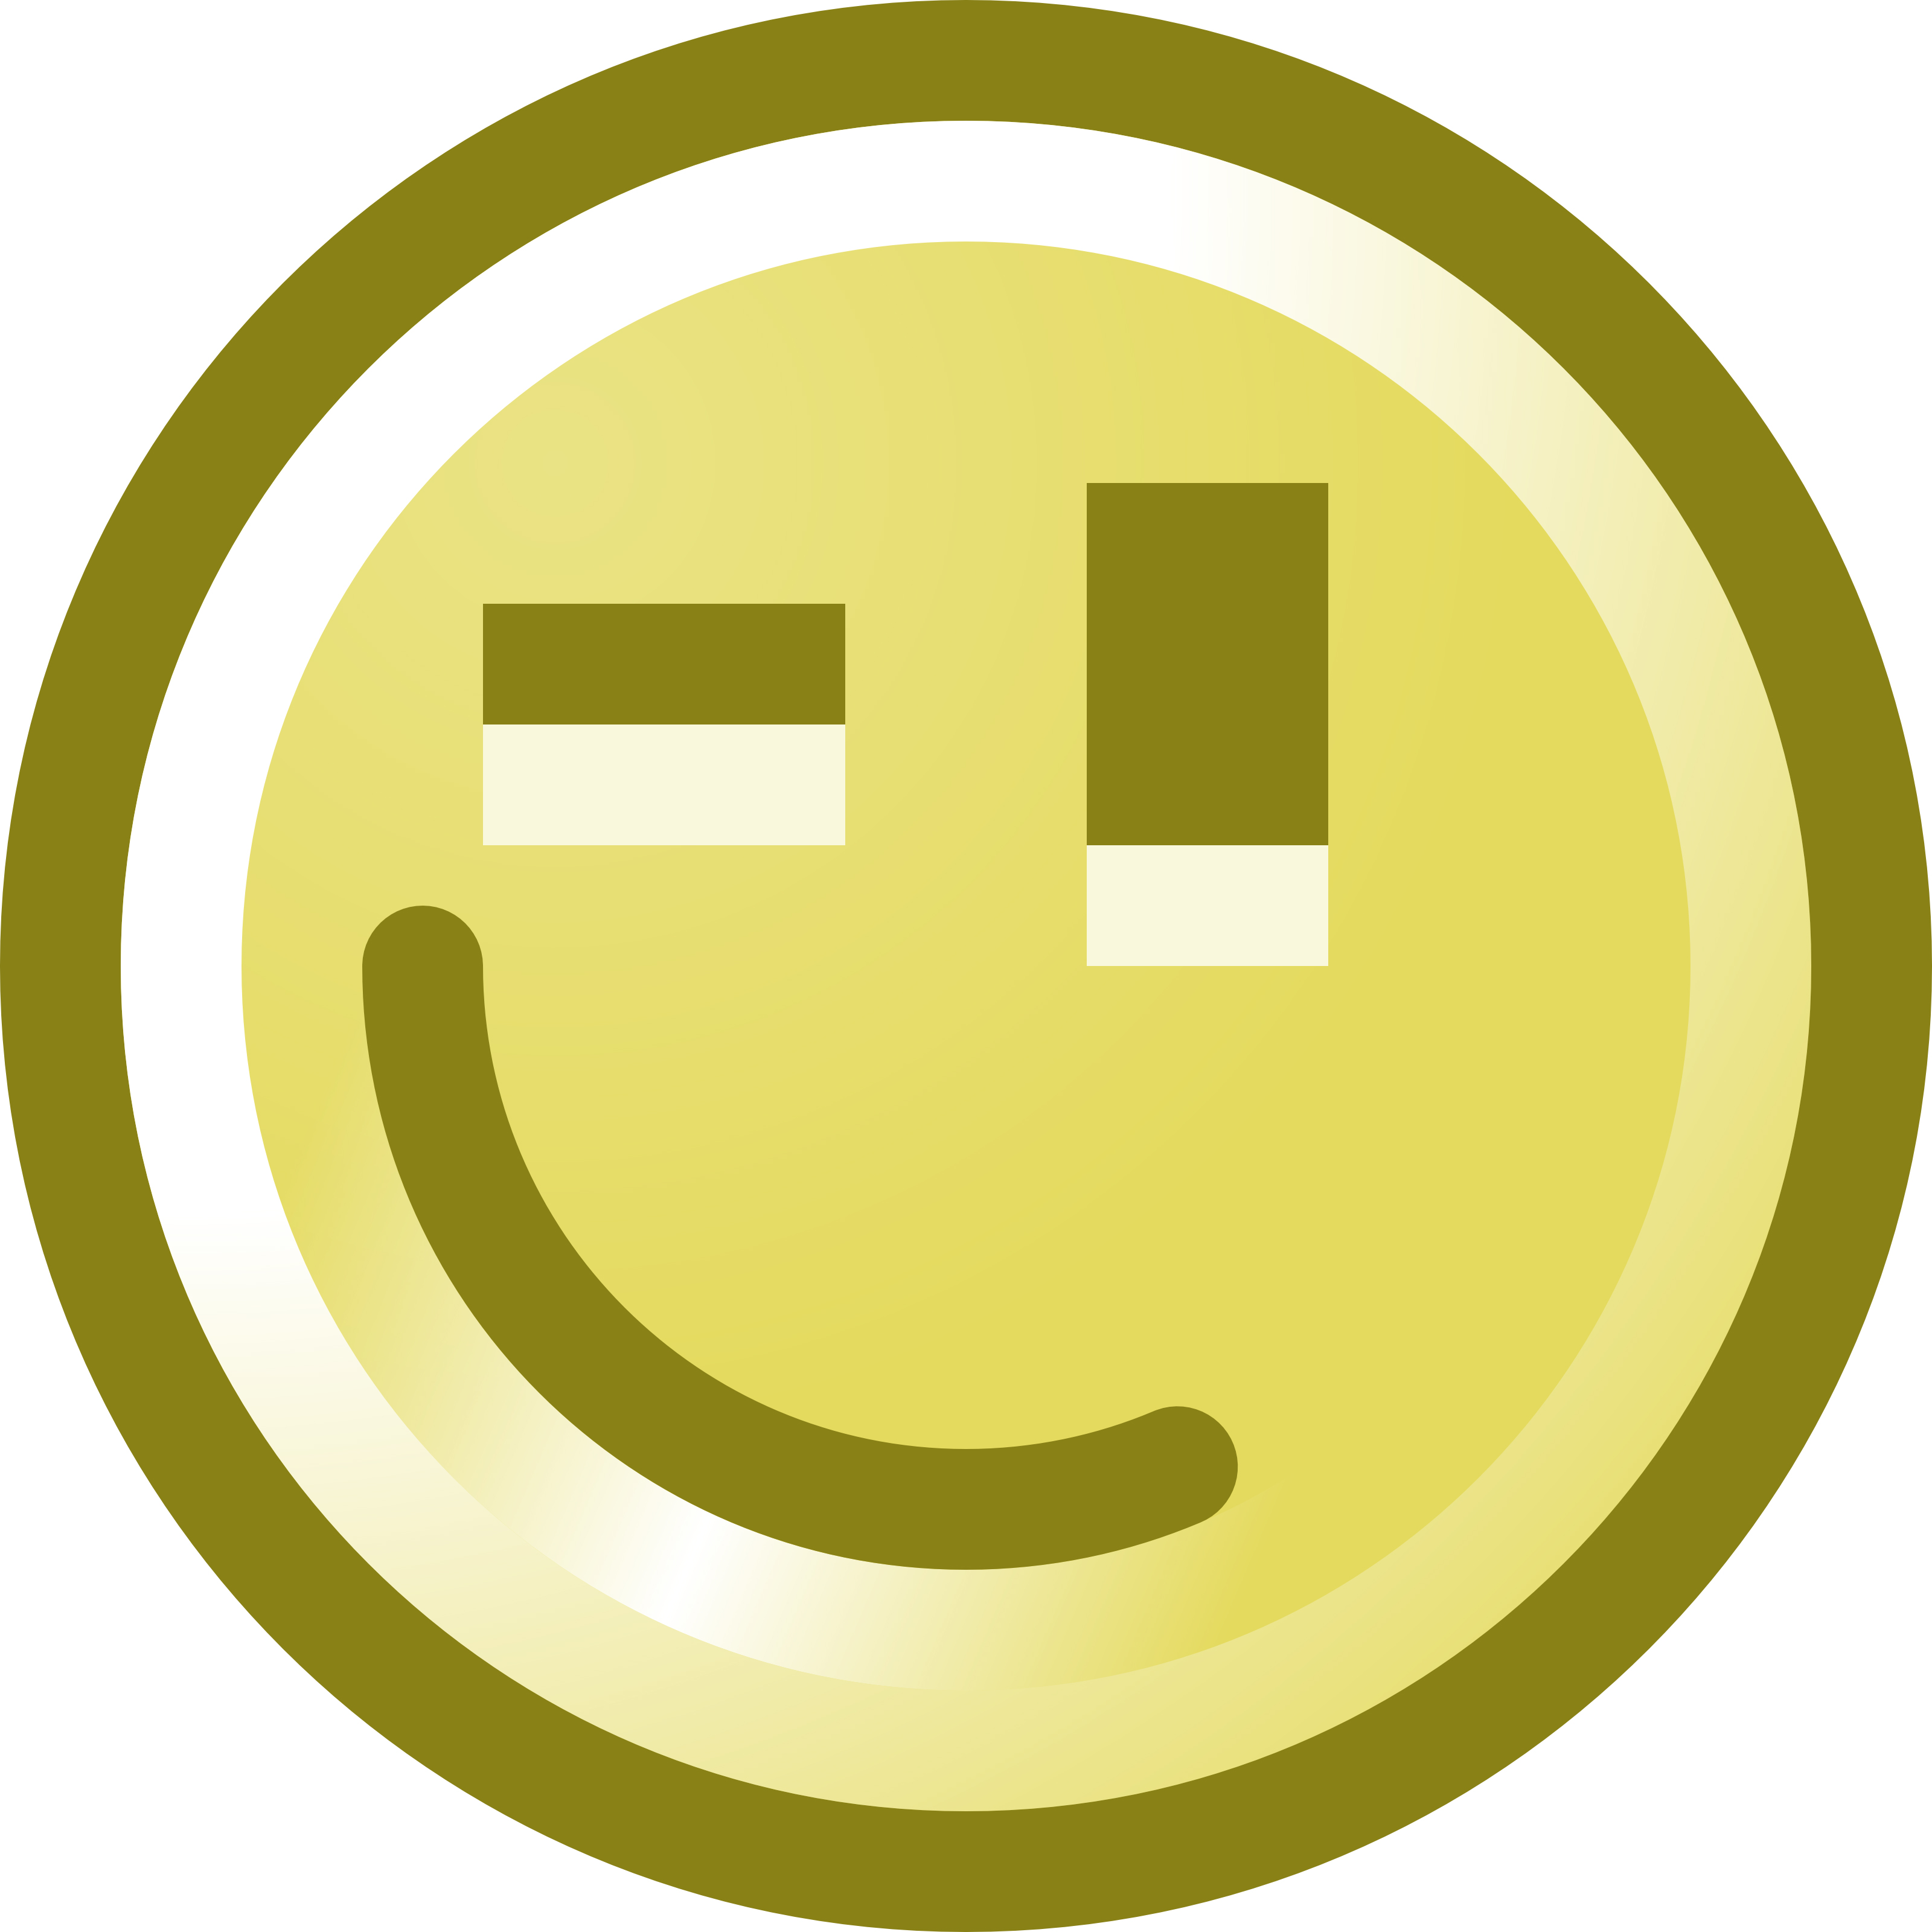 3200x3200 Happy Face Smiley Face Happy Smiling Face Clip Art